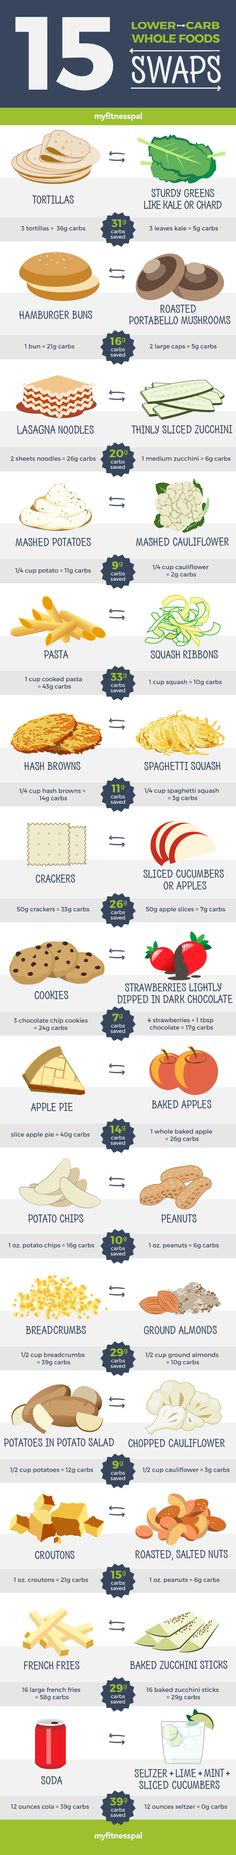 Lower-Carb Whole Food Swaps Trying to eat low carb? Try these easy lower carb swaps!Trying to eat low carb? Try these easy lower carb swaps! Get Healthy, Healthy Tips, Healthy Snacks, Healthy Recipes, Eating Healthy, Diet Recipes, Clean Eating, Healthy Weight, Healthy Food Substitutes